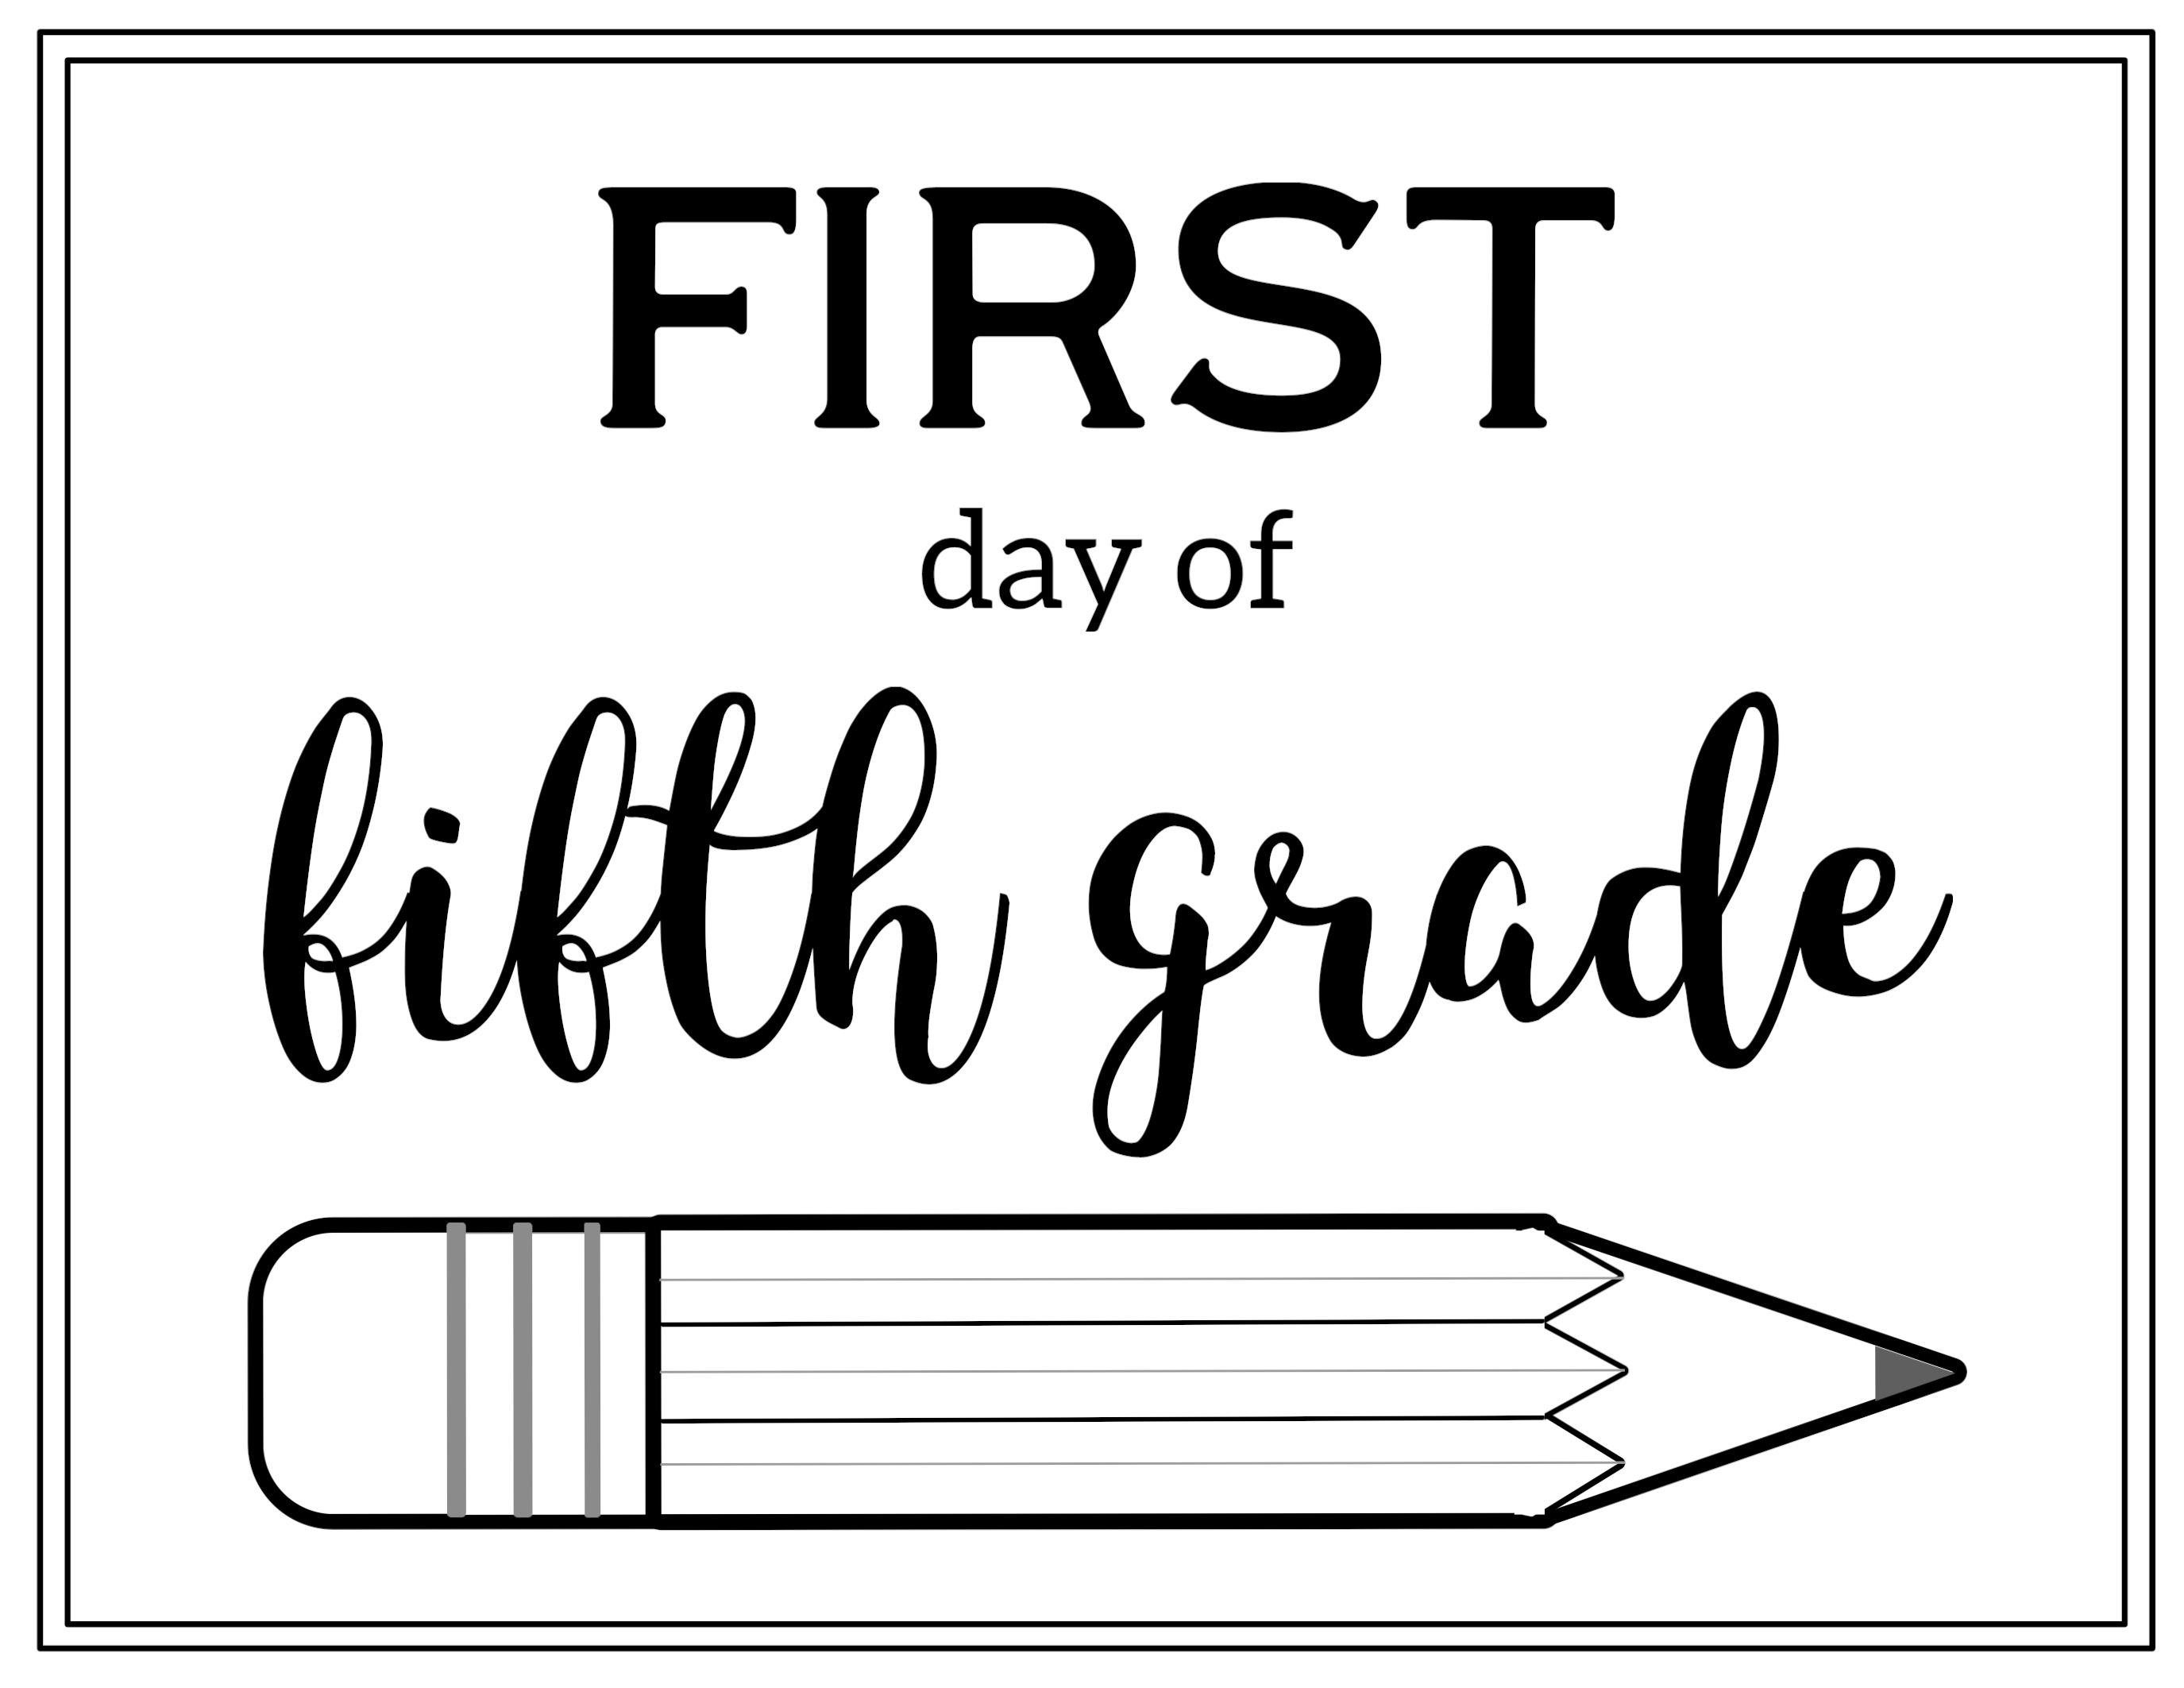 graphic relating to First Day of 5th Grade Printable titled No cost Printable Very first Working day of Higher education Signal Pencil - Paper